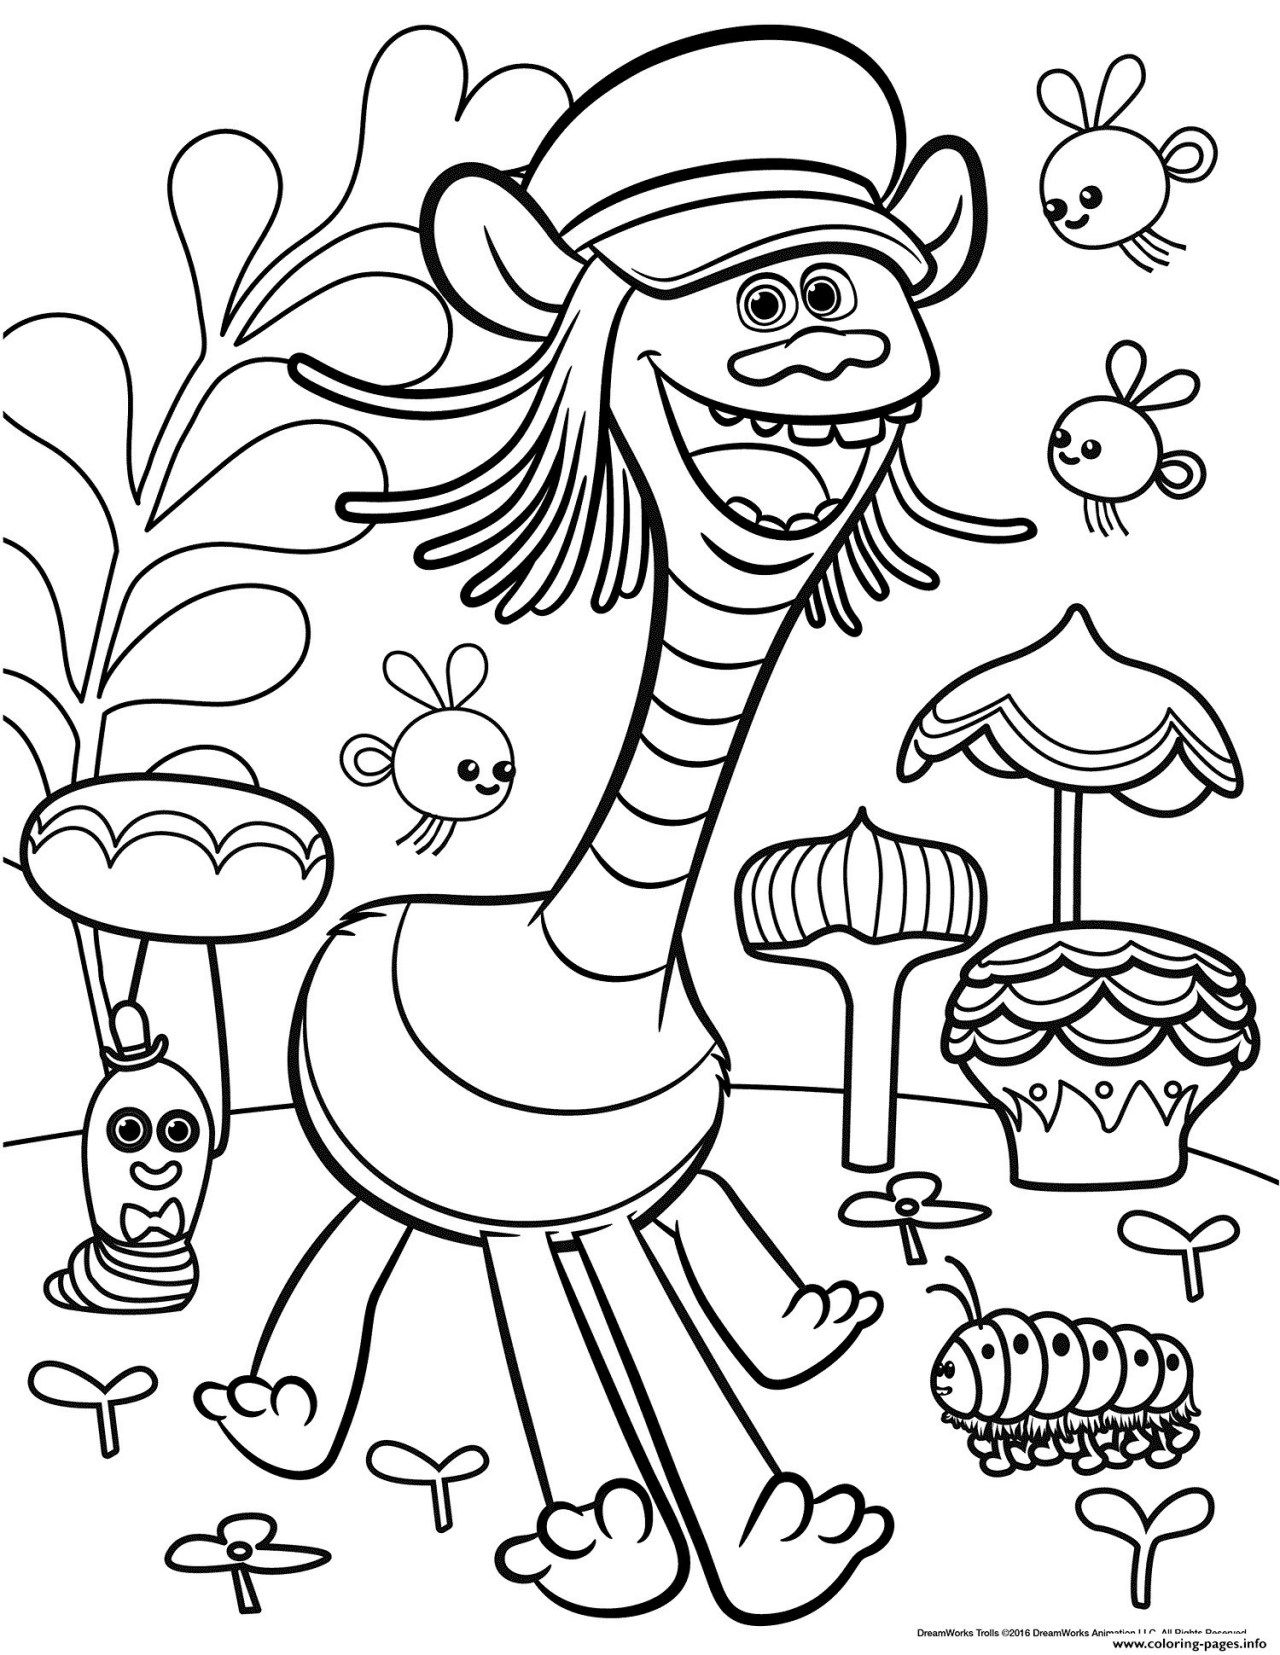 Free Trolls Coloring Pages Trolls Coloring Sheets Pdf Pages Ba